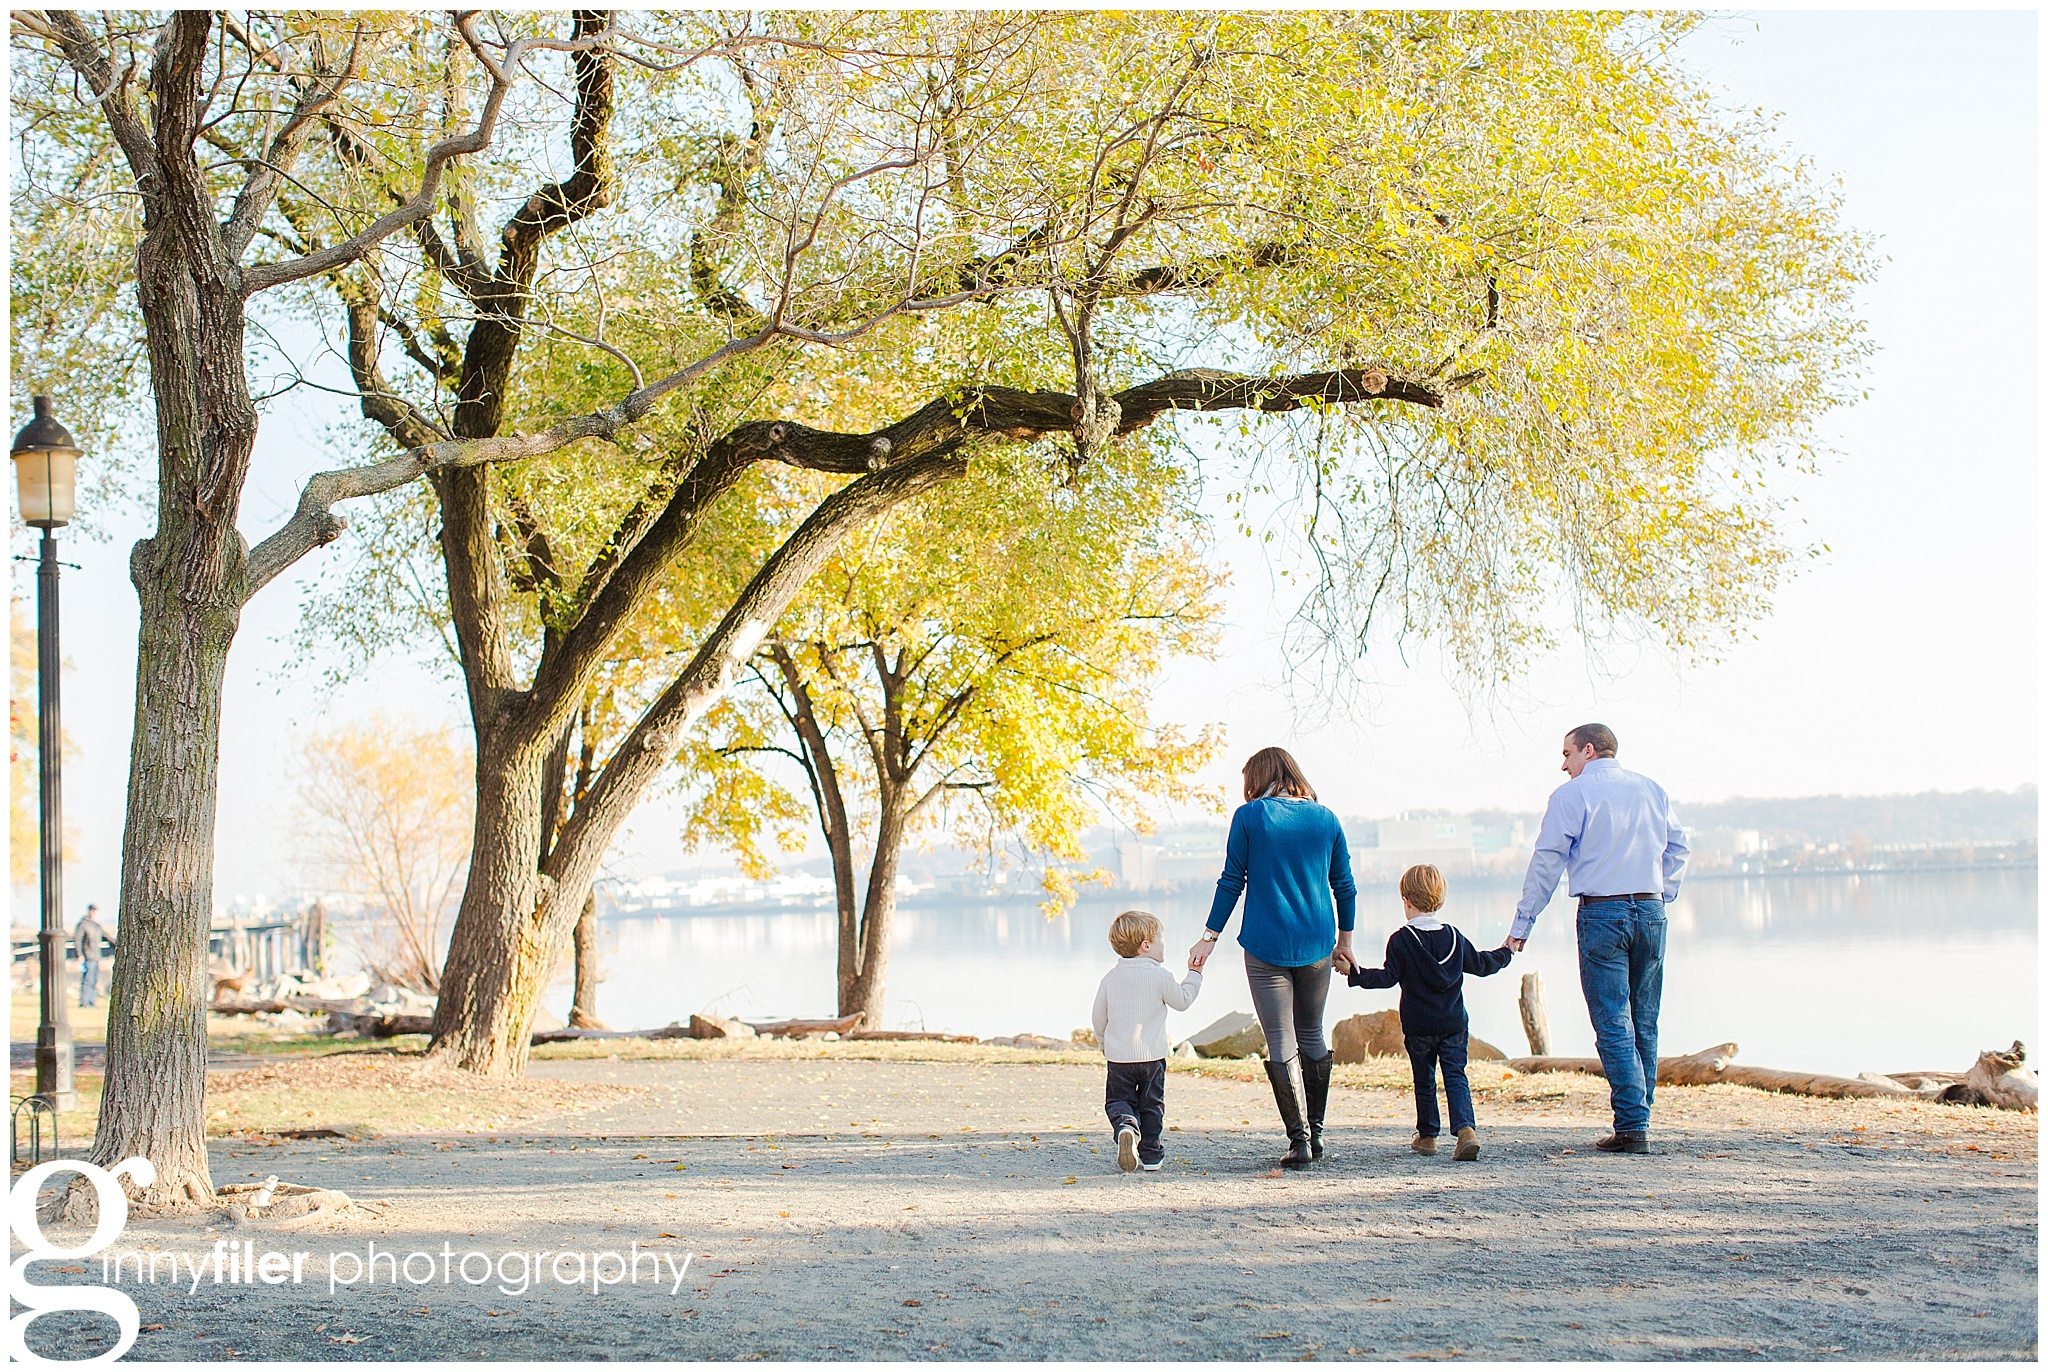 family_photography_riedy_0025.jpg